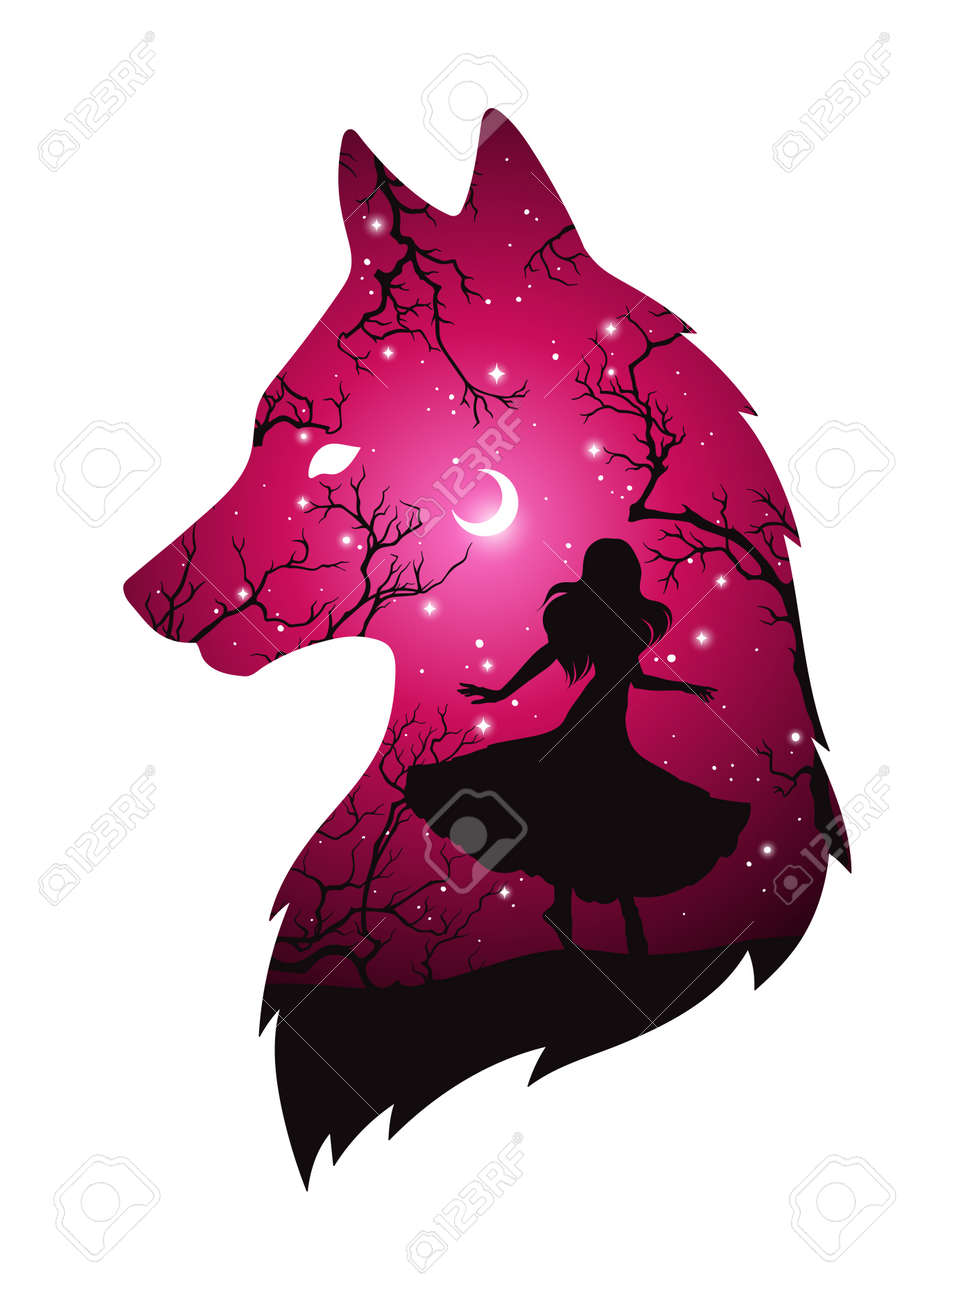 Double exposure silhouette of wolf with shadow of beautiful woman in the night forest, crescent moon and stars. Sticker or tattoo design vector illustration. Pagan totem, wiccan familiar spirit art. - 159333273